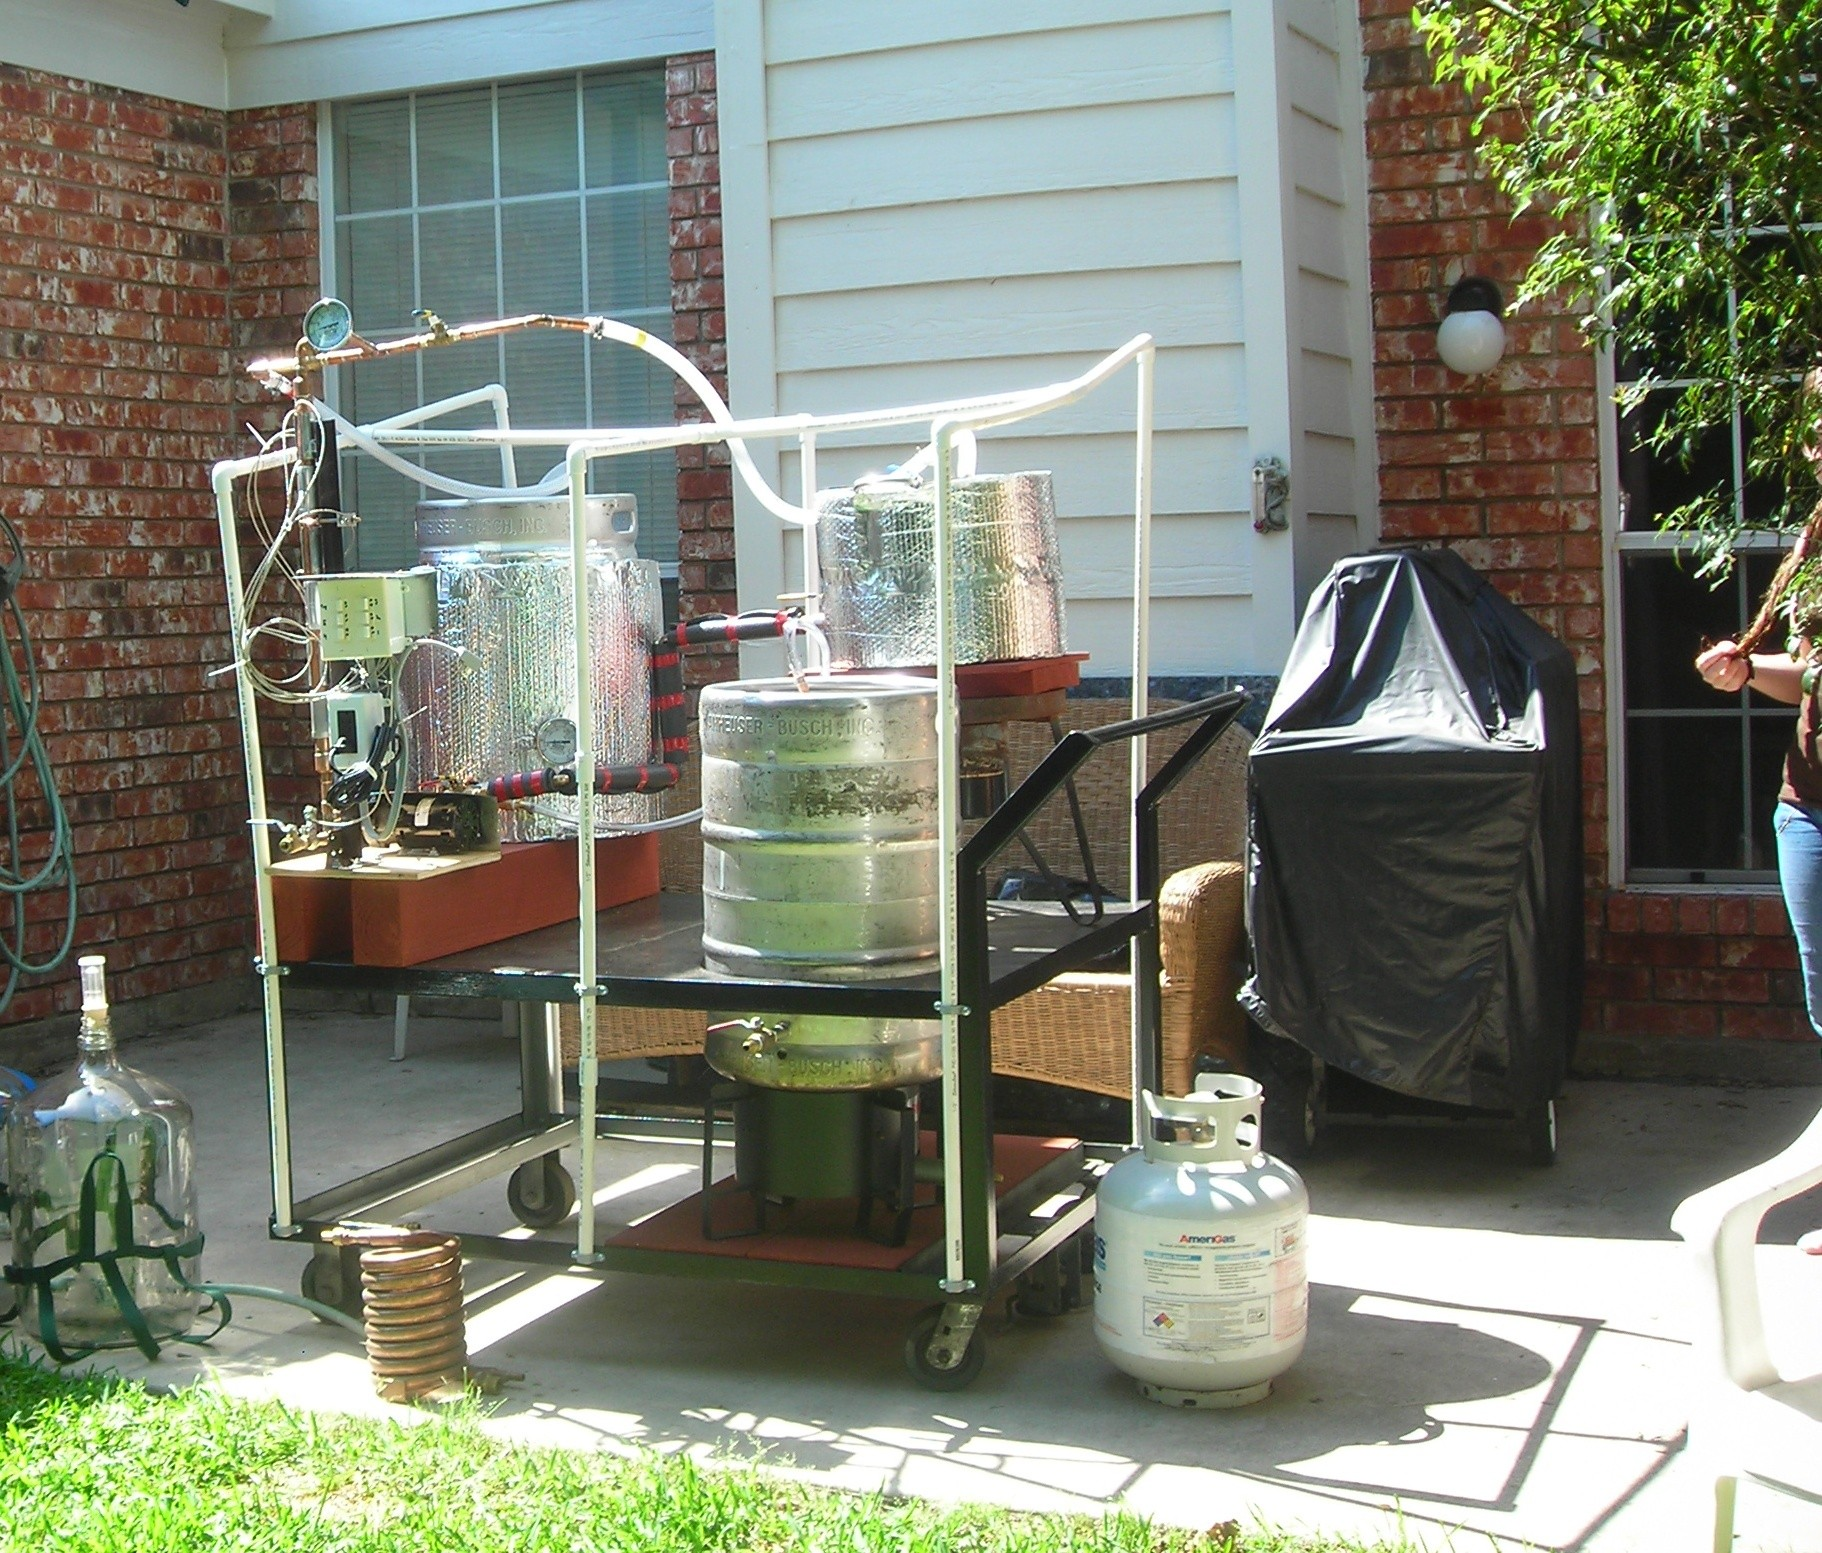 Dave Hill - My Home-Brewery